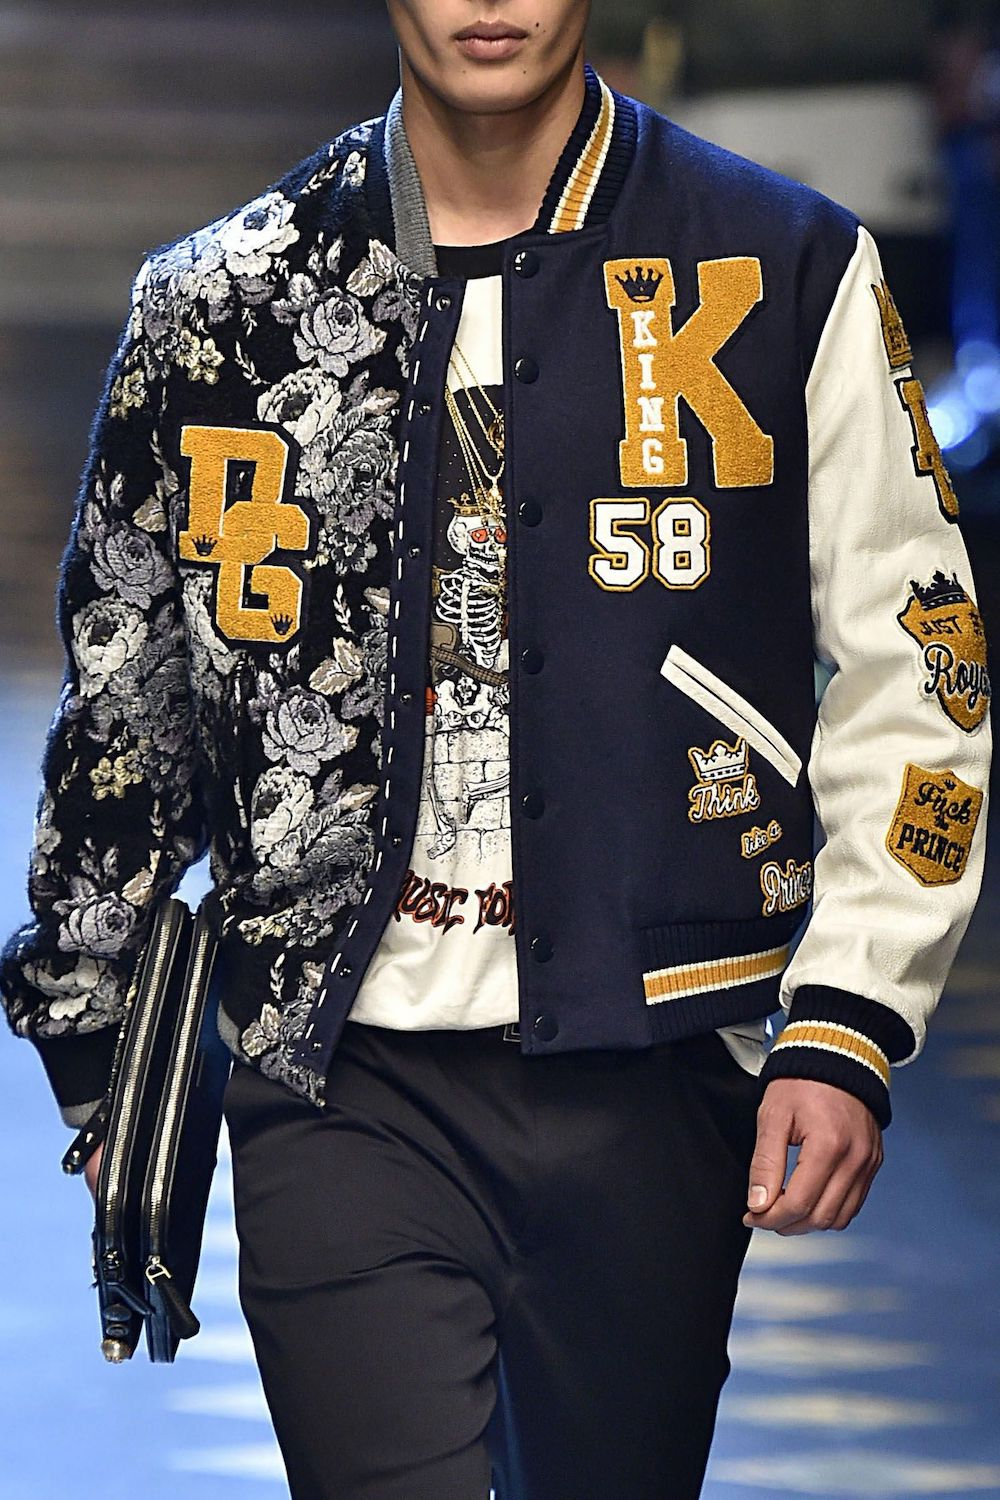 Dolce&Gabbana Varsity Jacket - Fall 2017 Fashion Show